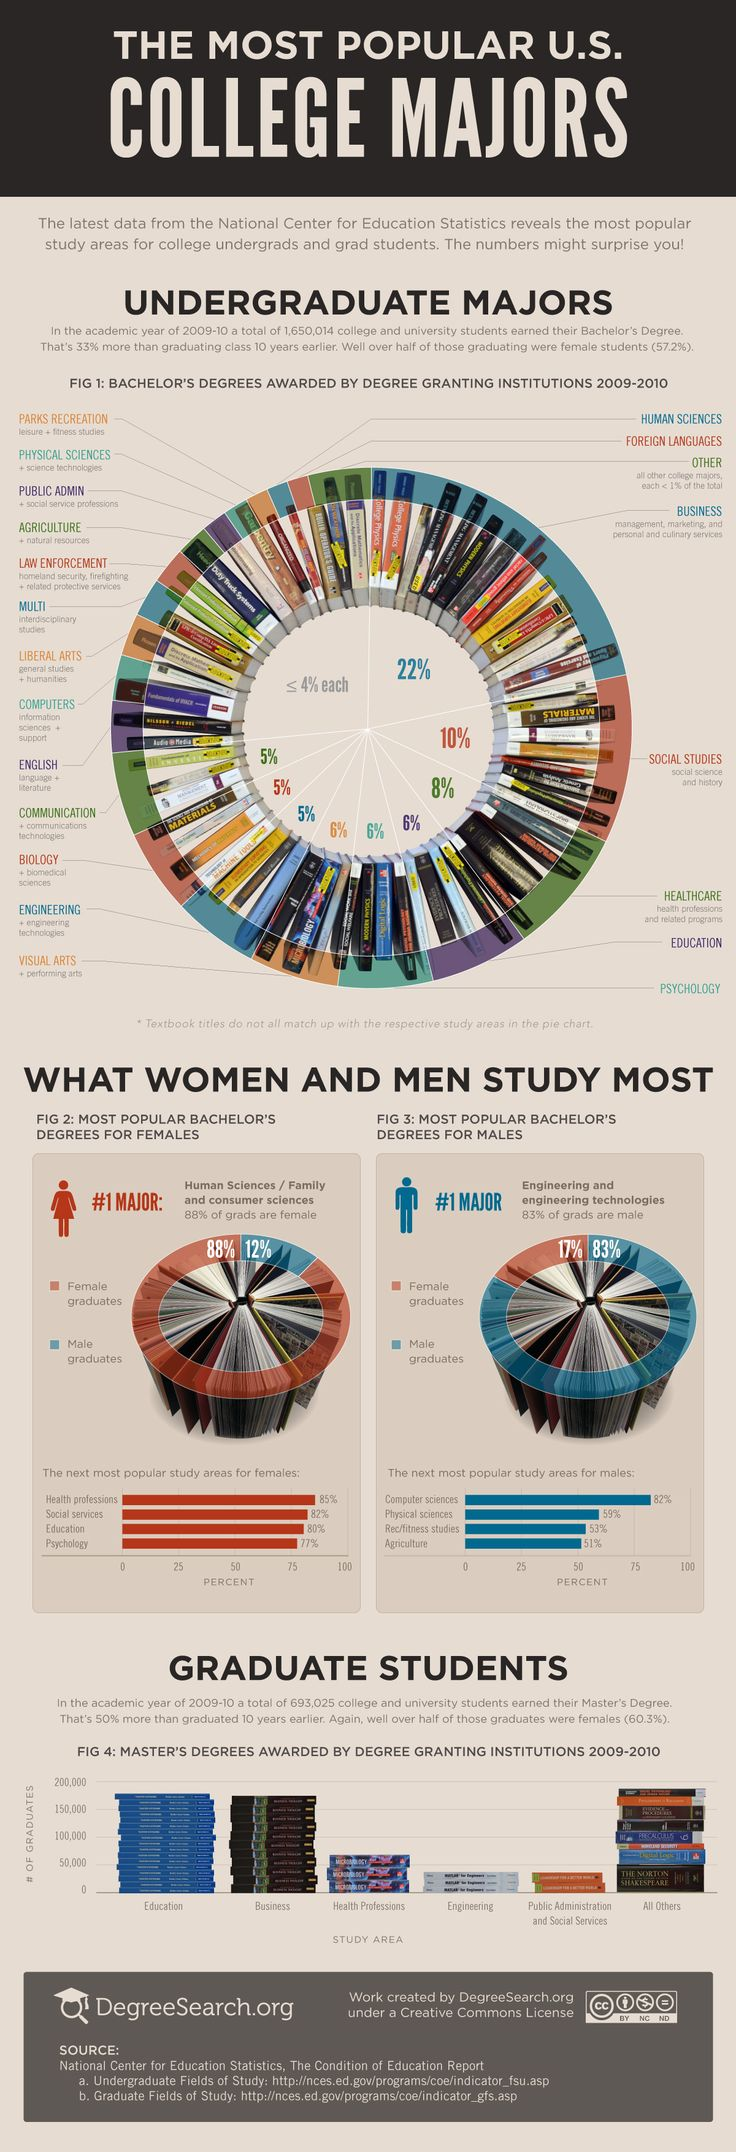 The Most Popular College Majors [infographic] via DegreeSearch.org.